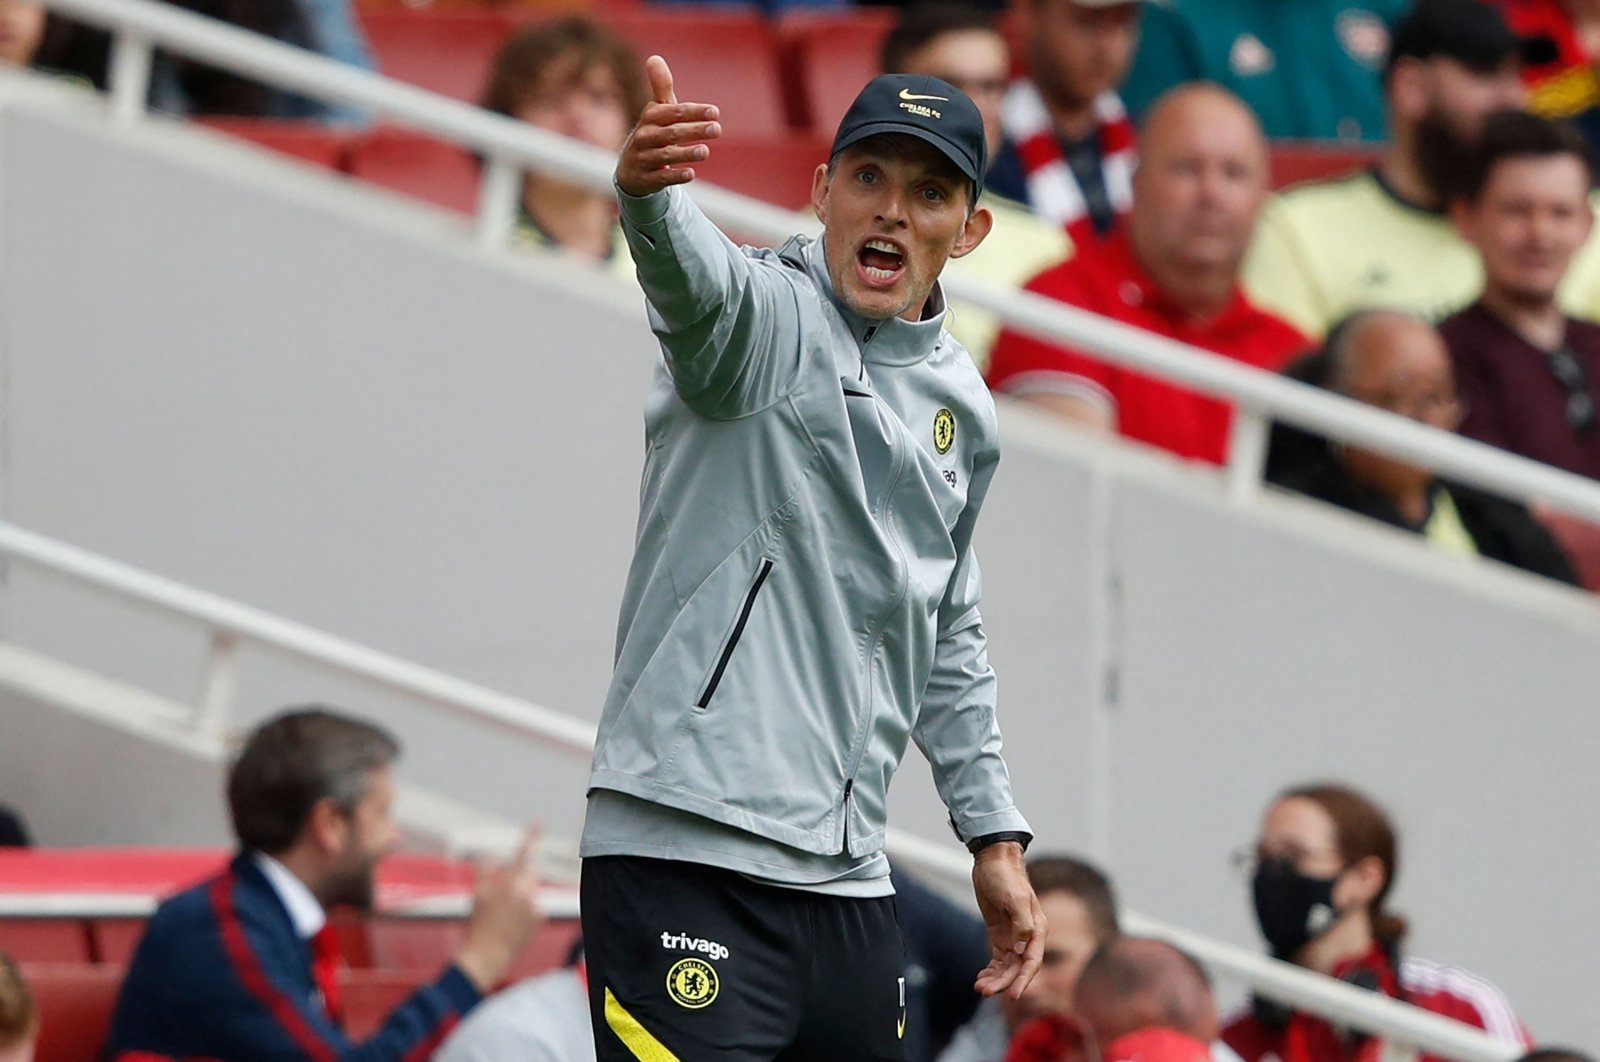 Chelsea's German head coach Thomas Tuchel gestures on the touchline during the pre-season friendly football match between Arsenal and Chelsea at The Emirates Stadium, London, England, Aug. 1, 2021. (AFP Photo)